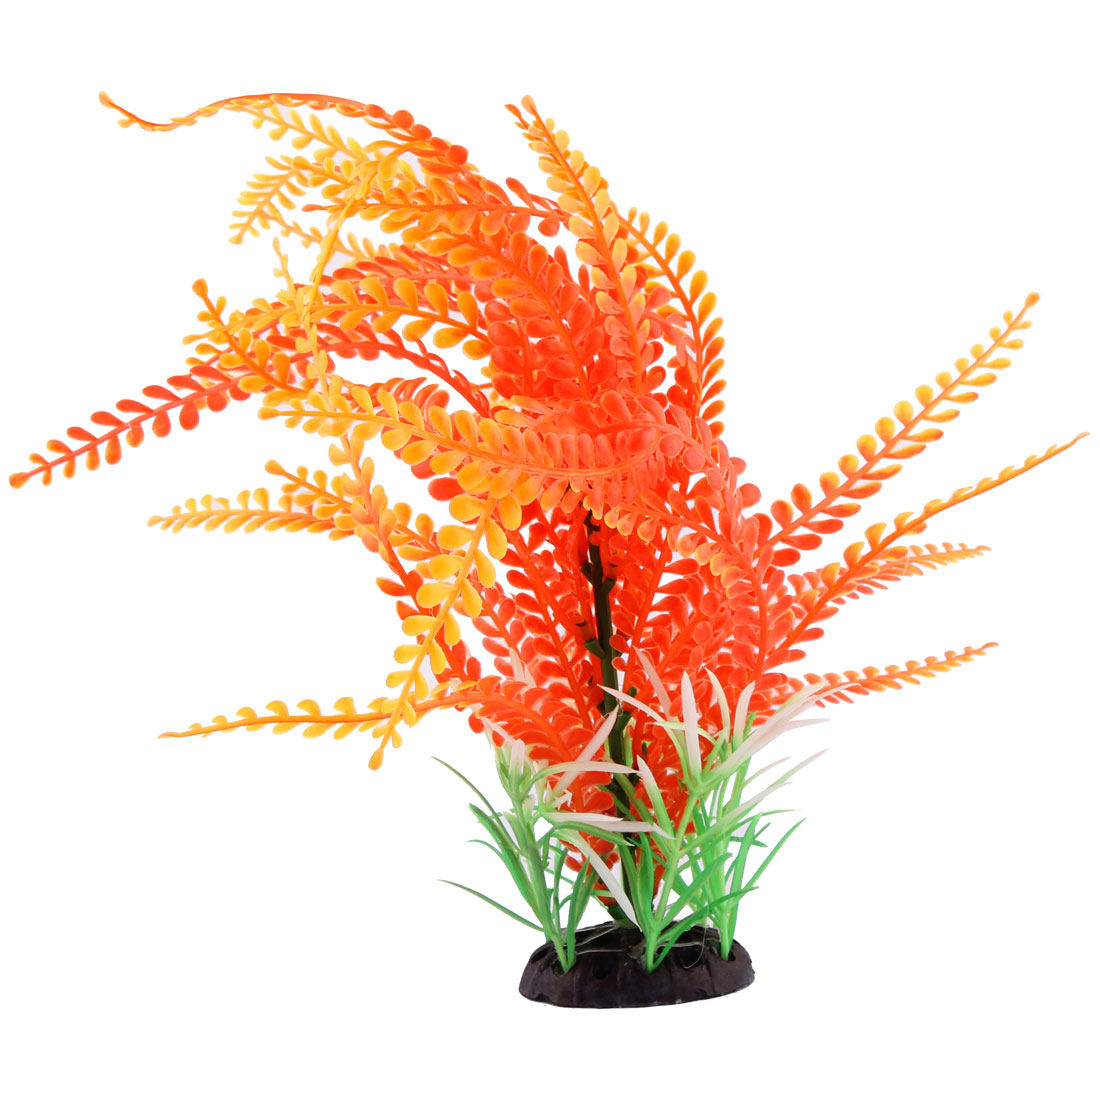 Fish Tank Fishbowl Decoration Ceramic Base Artificial Aquarium Plant Grass